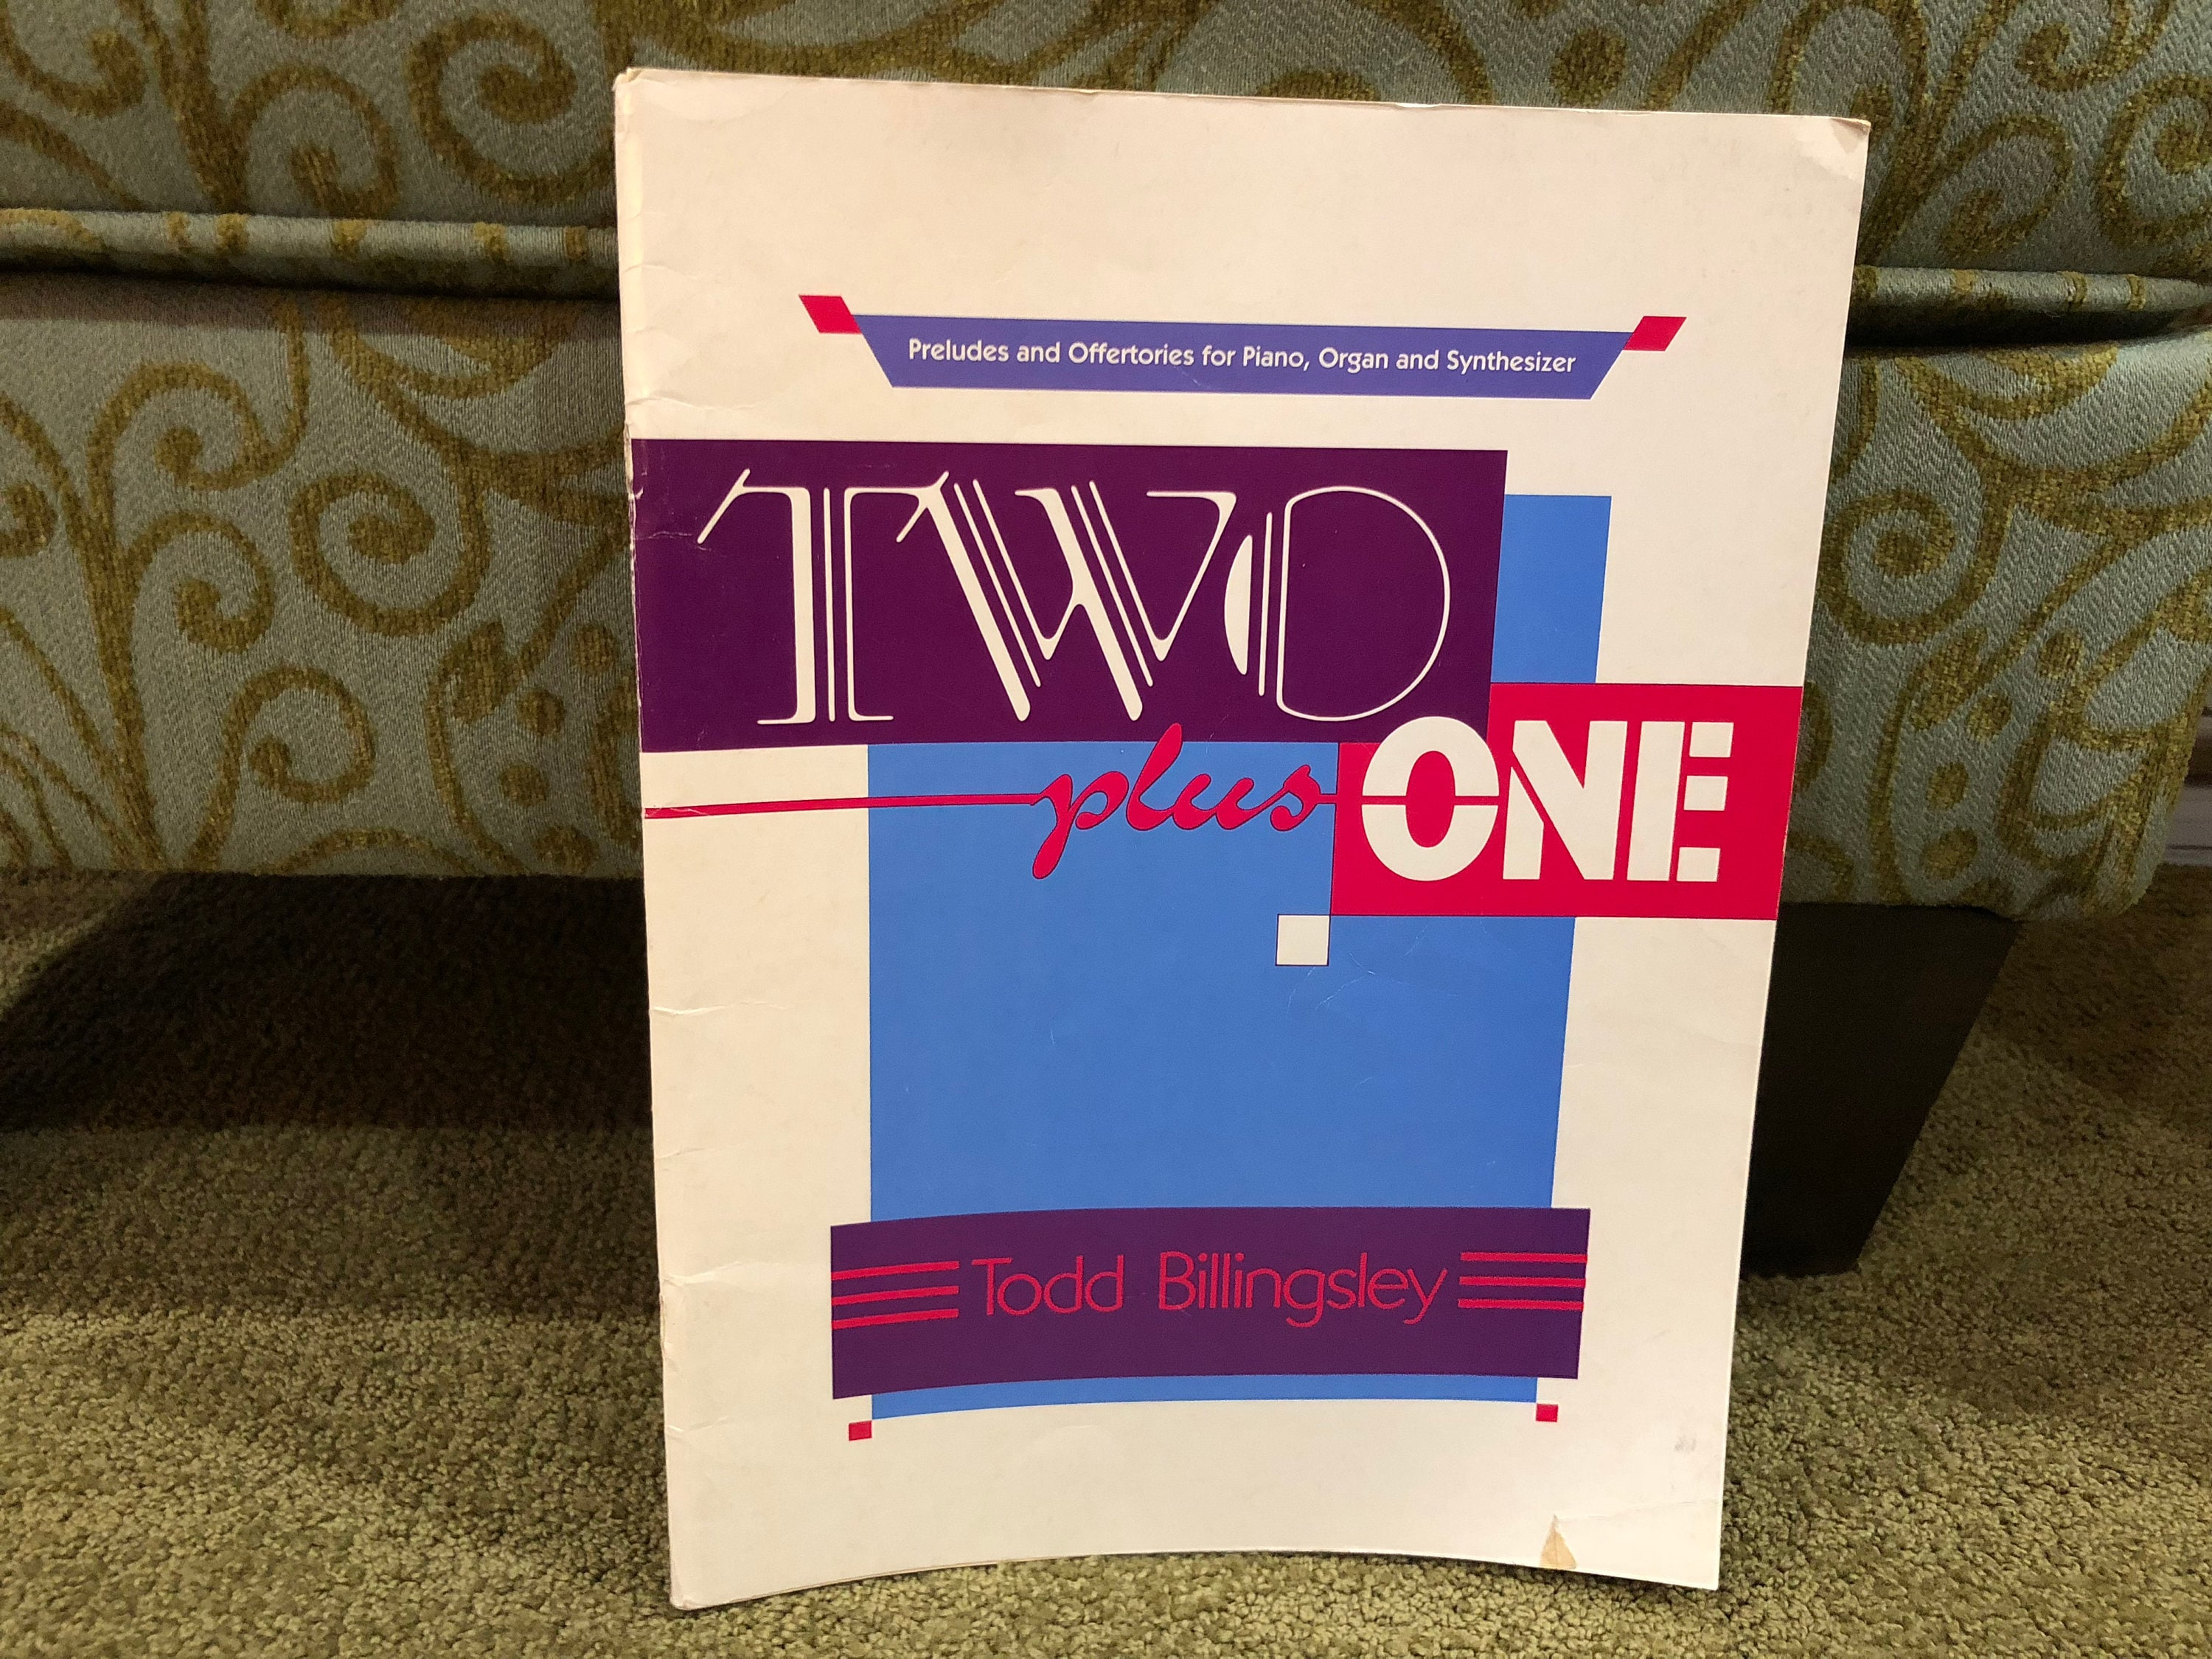 2 PLUS 1-Preludes and Offertories for Piano, Organ & Synth -Todd Billingsley